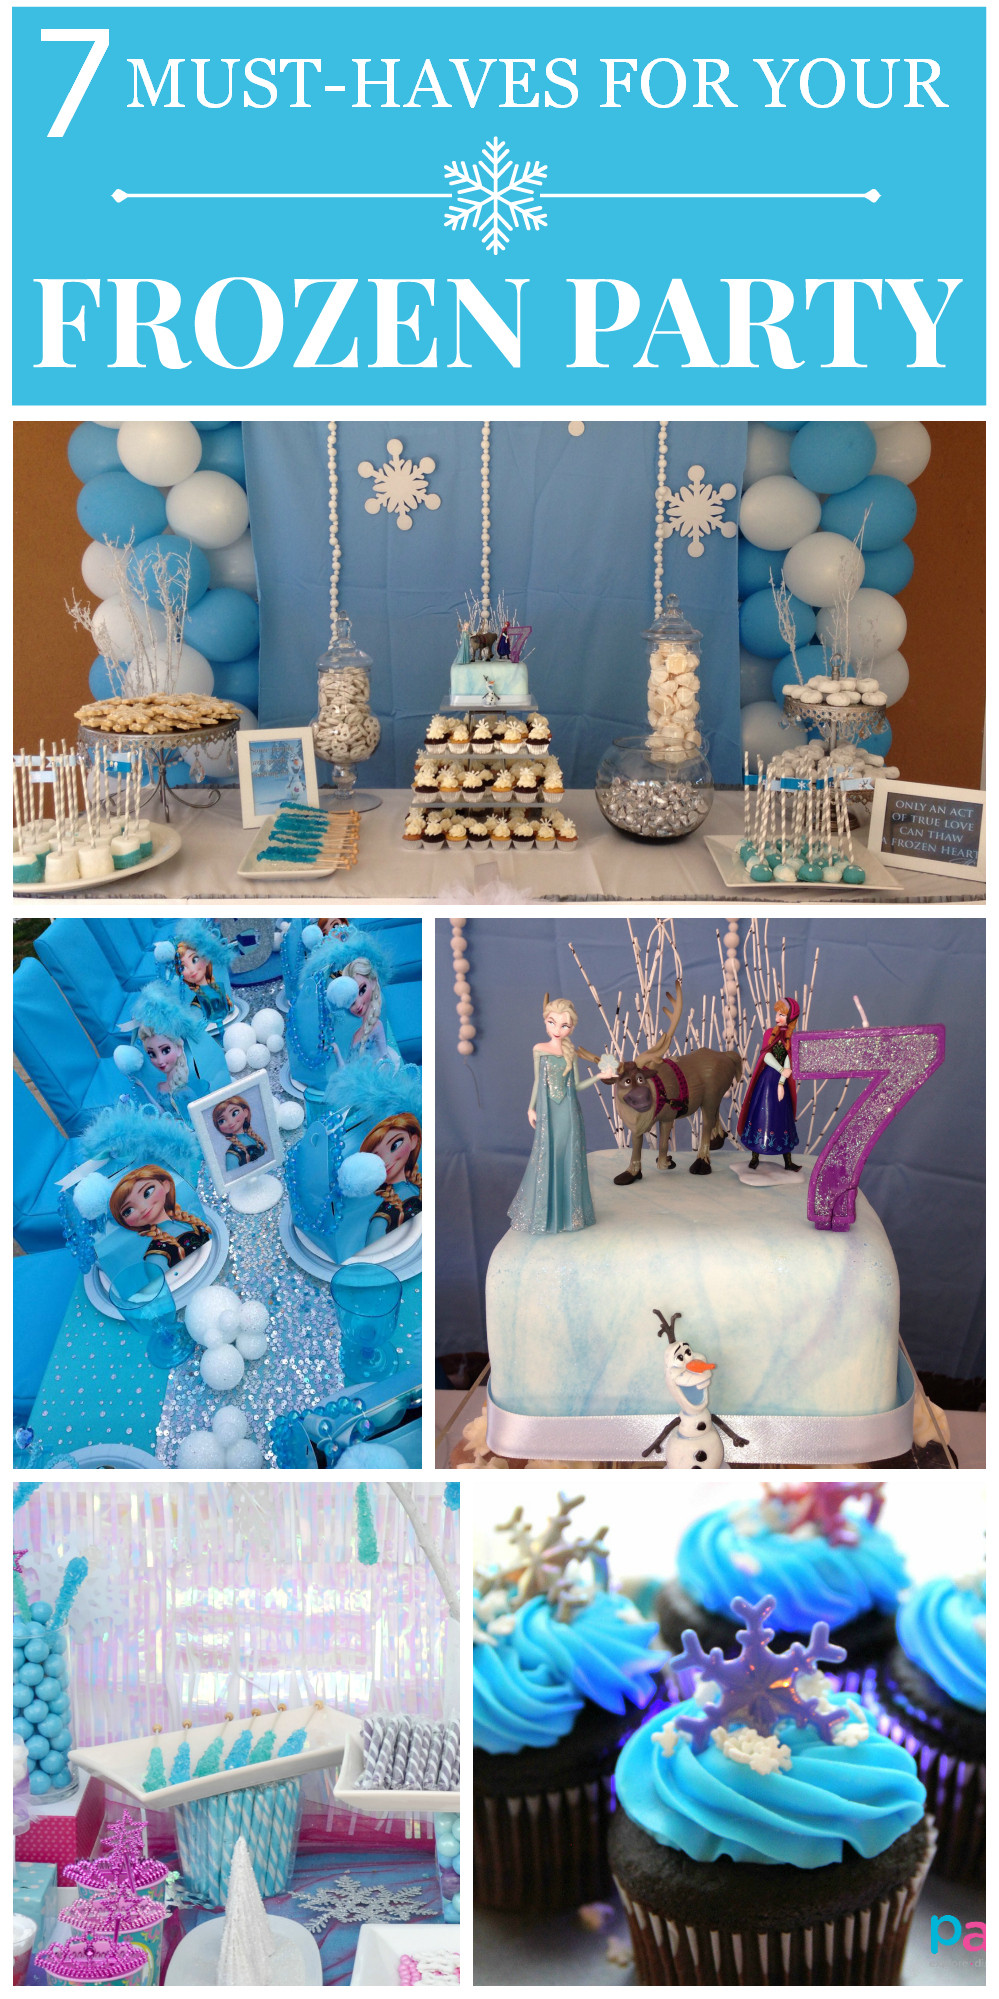 Best ideas about Frozen Character For Birthday Party . Save or Pin 7 Things You Must Have at Your Frozen Party Now.